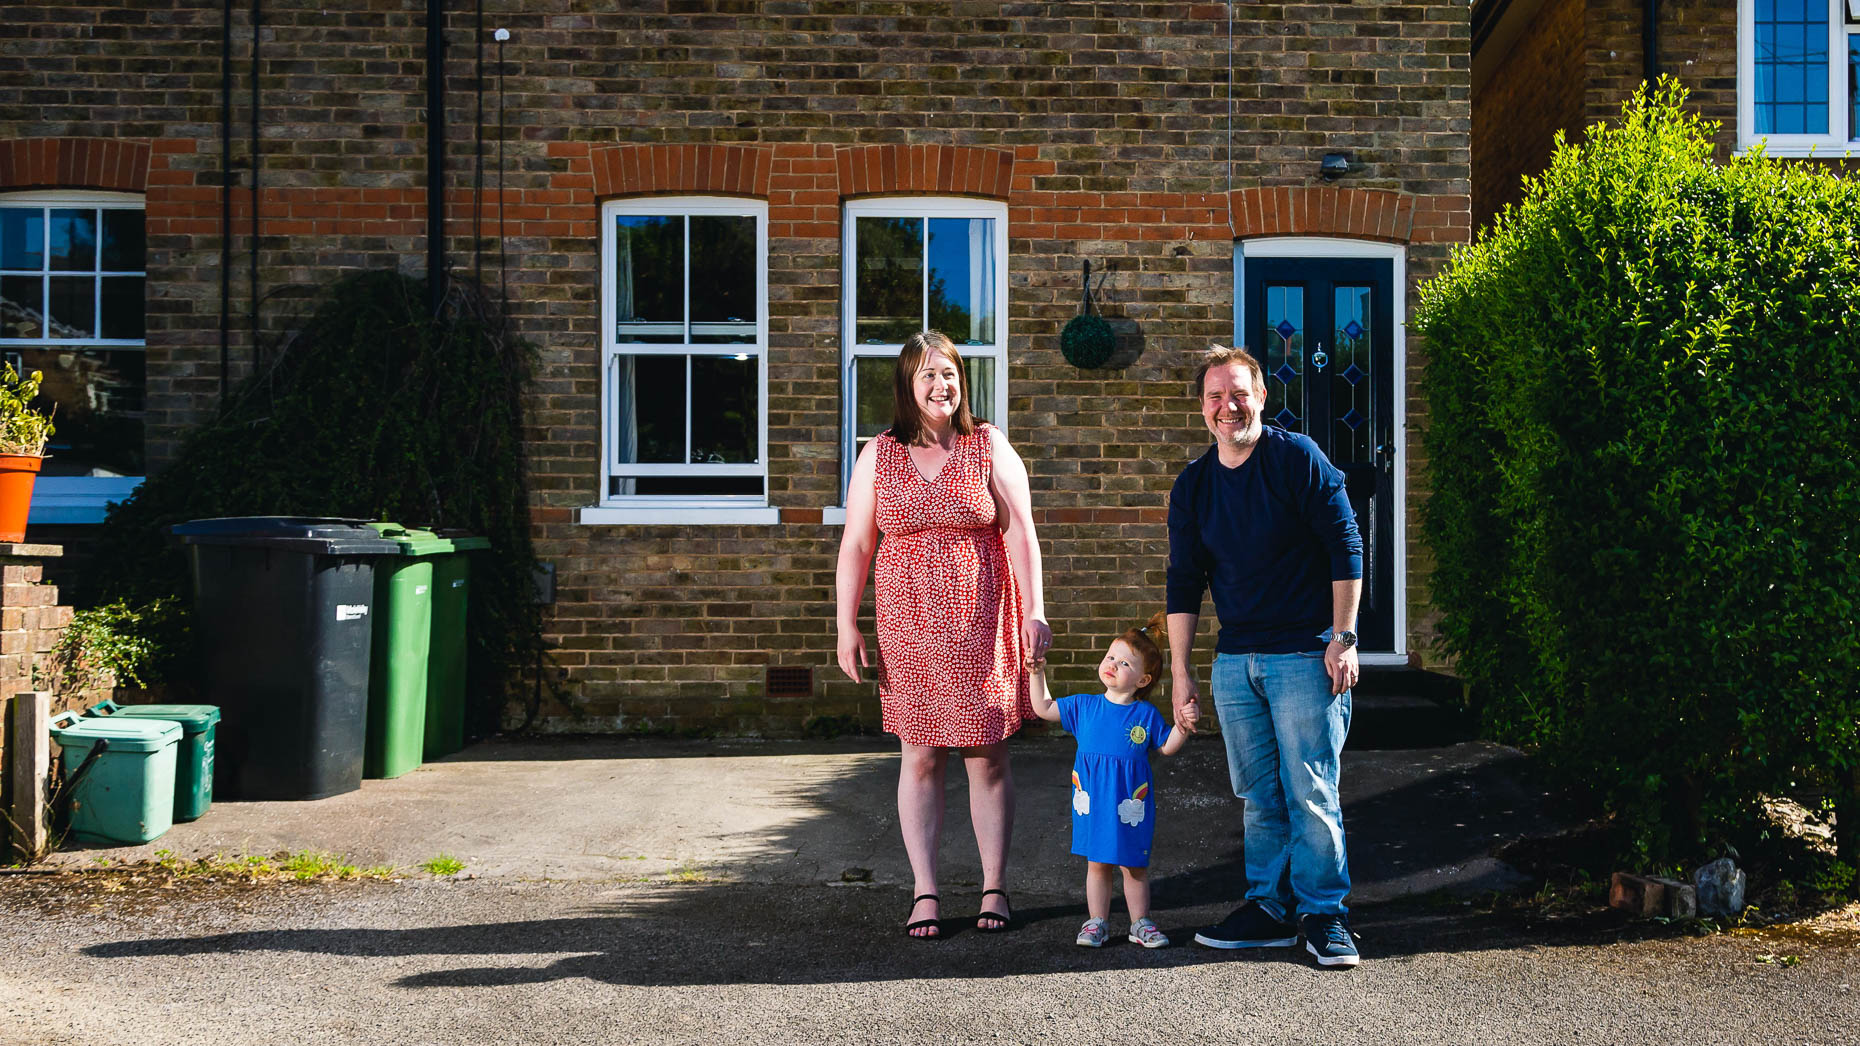 Ashtead Doorstep Portraits 35